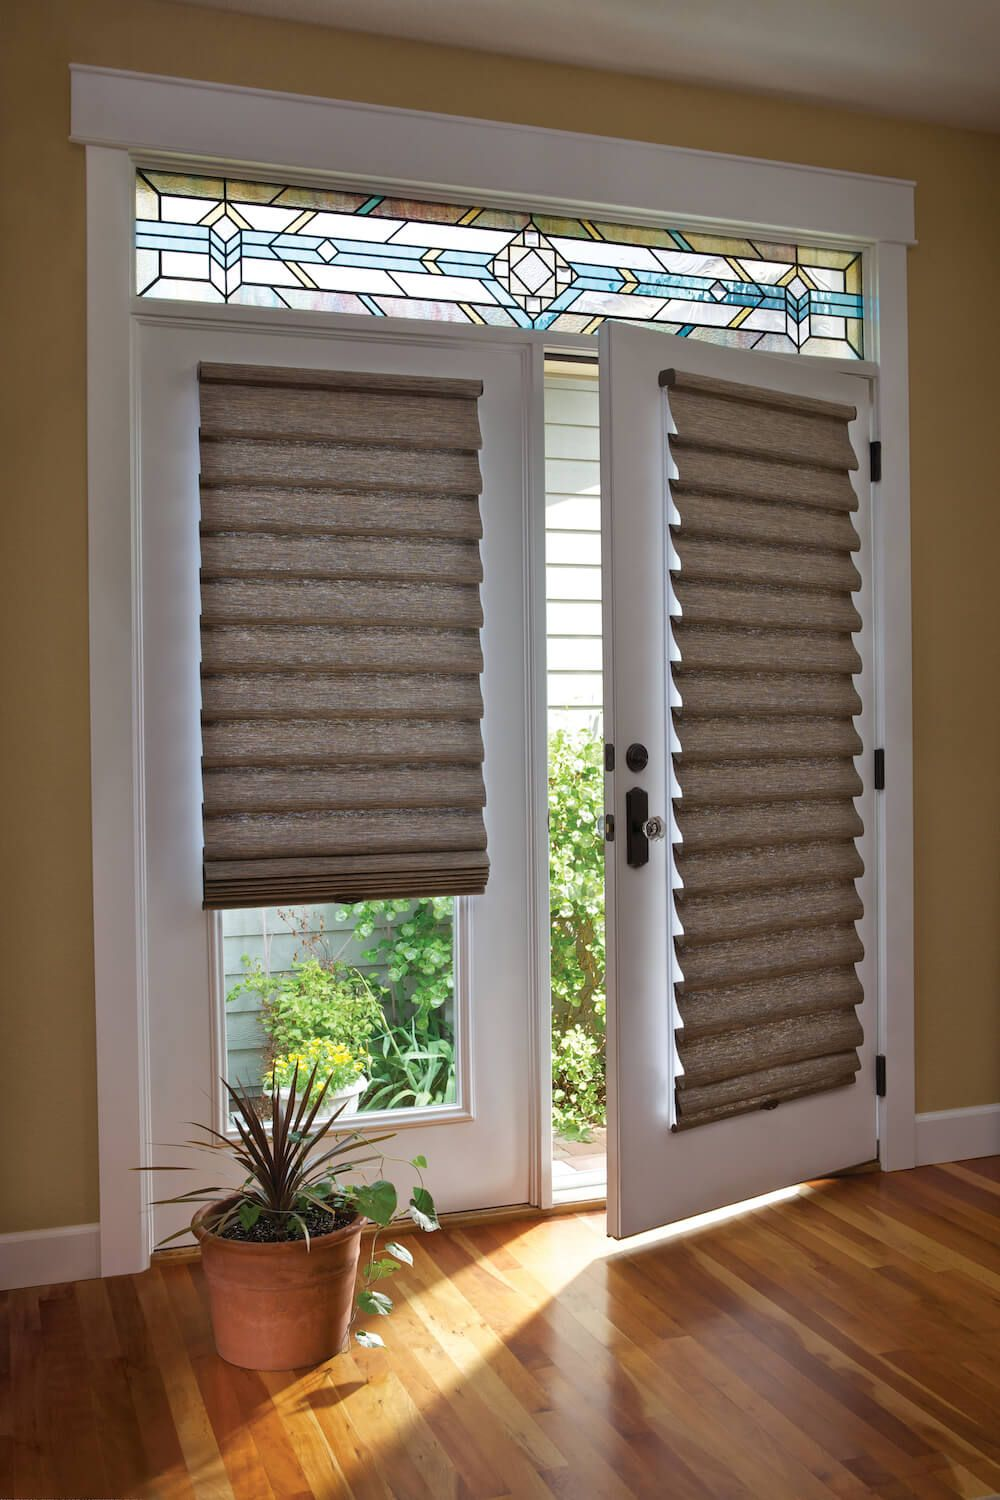 Vertical Blind Alternatives | Pinterest | Vignettes, Roman and ...